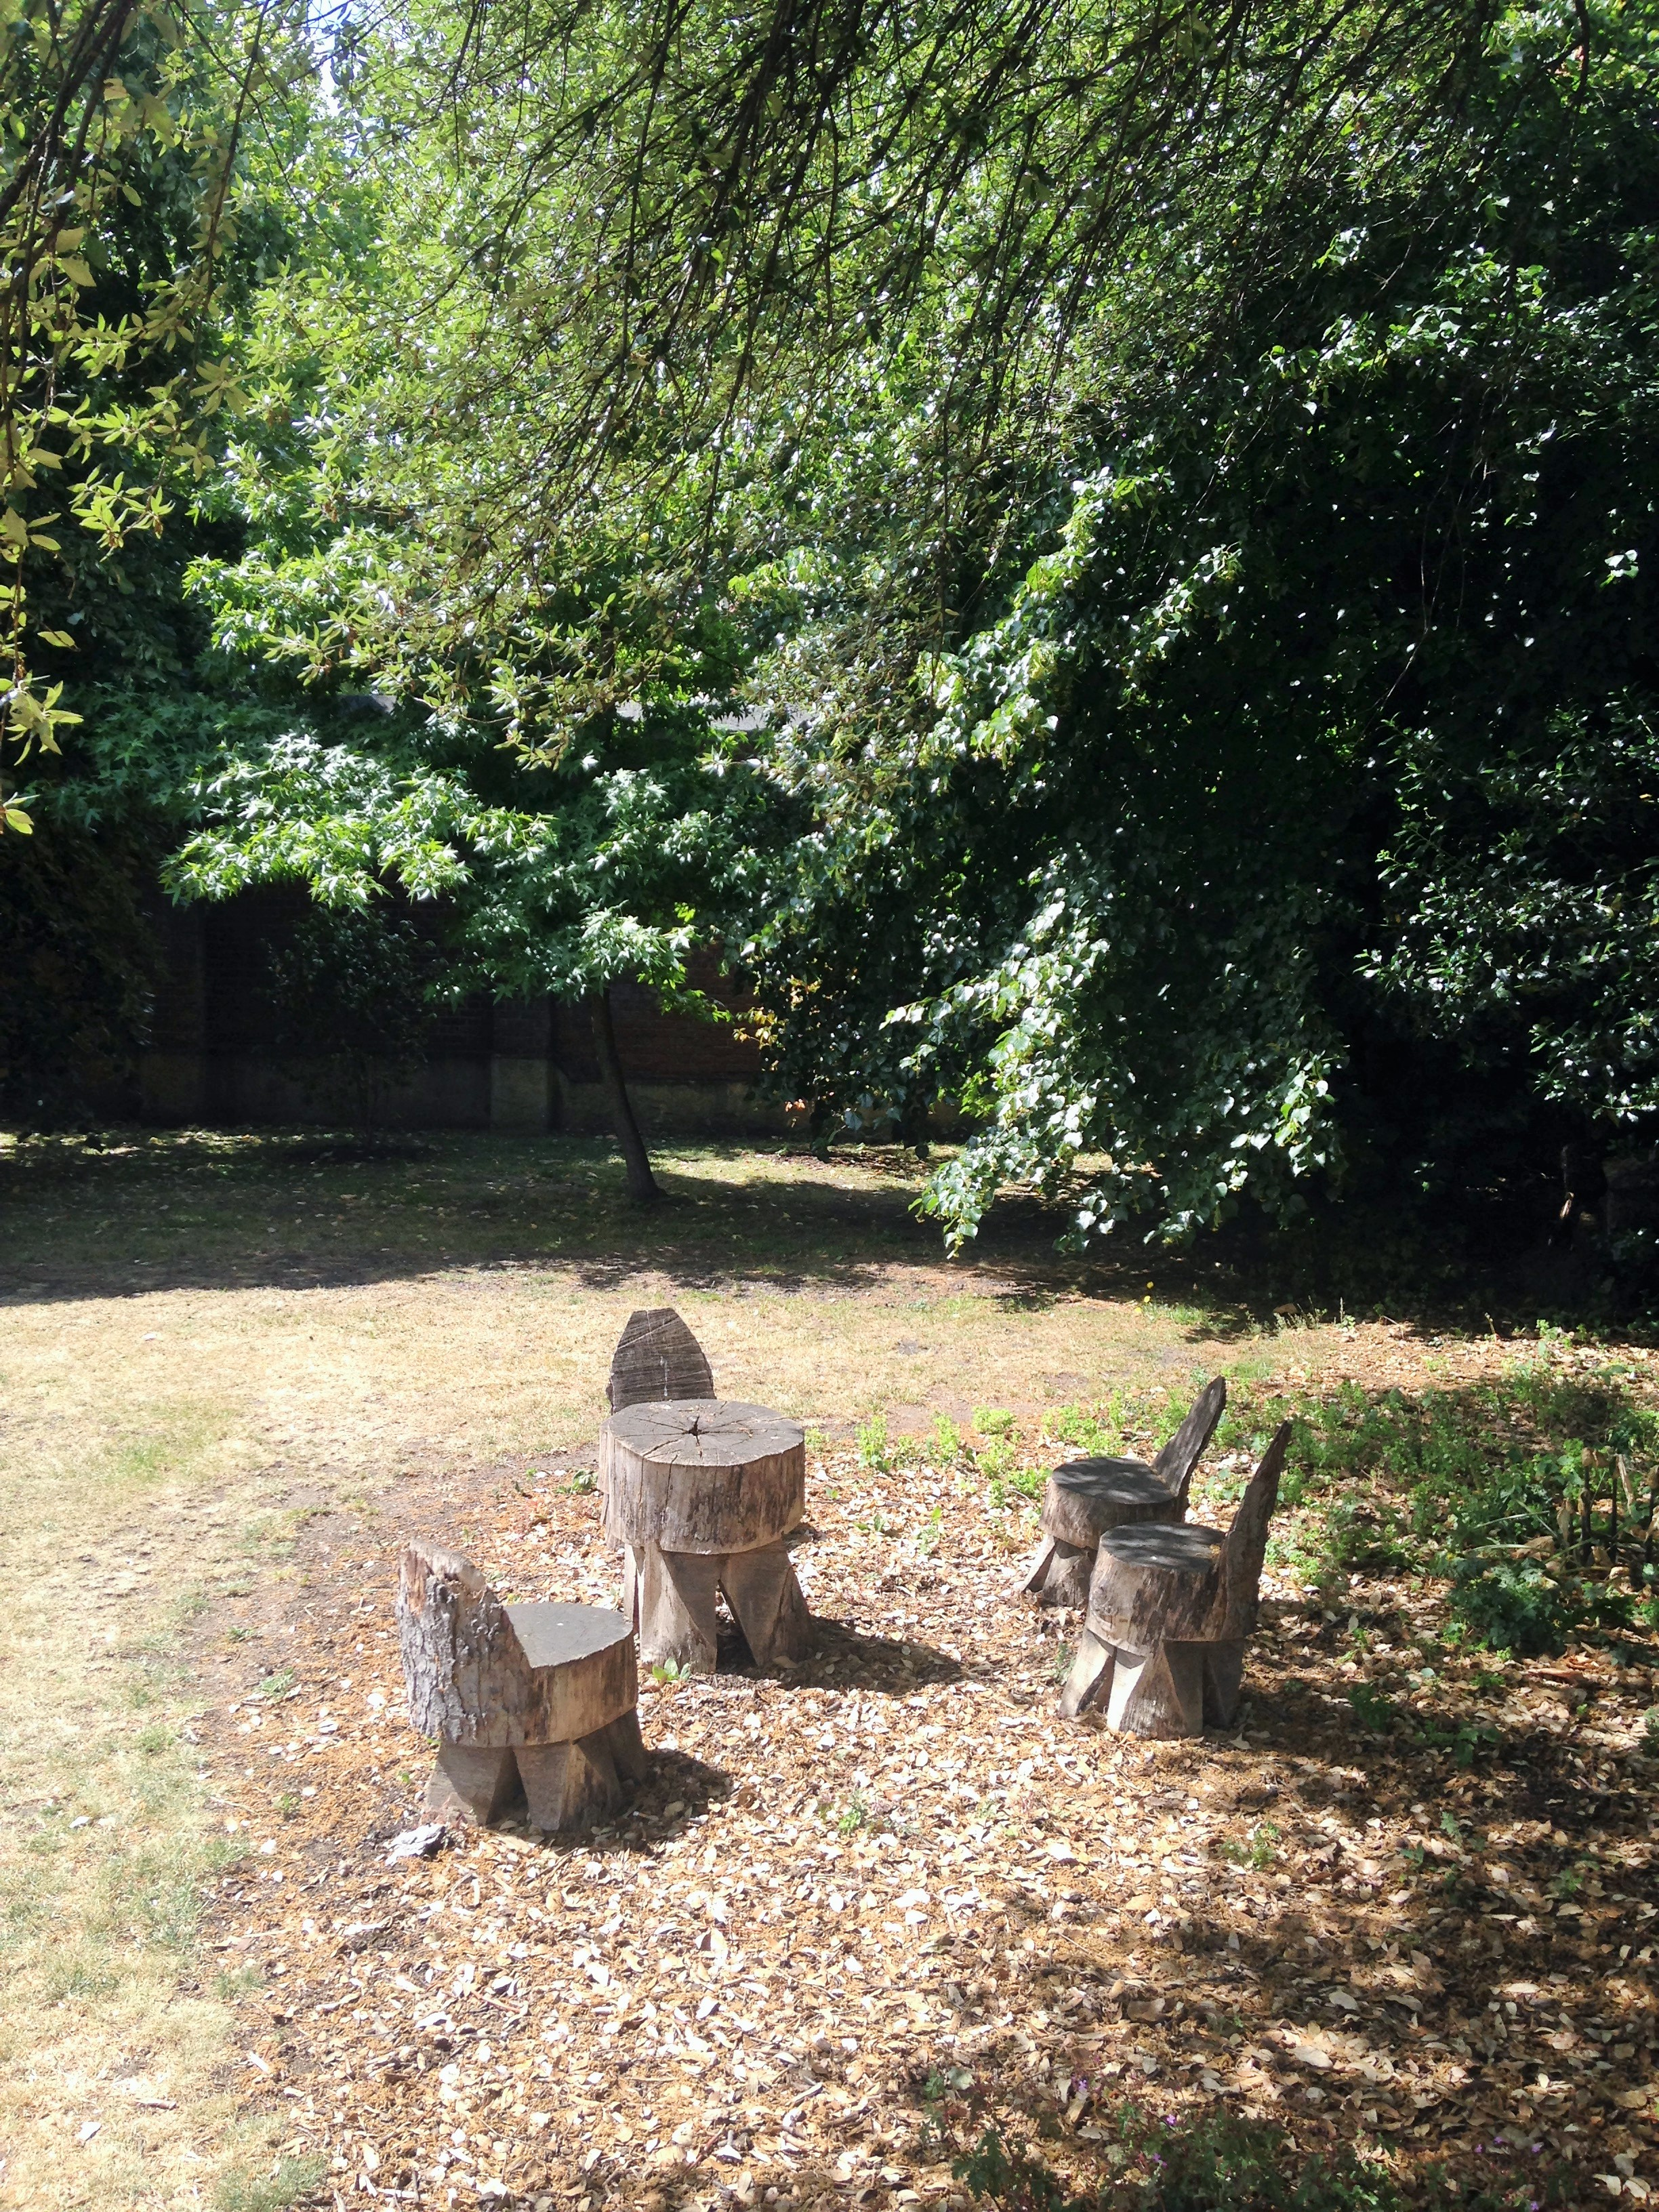 wooden chairs in Lambeth Palace Gardens - kenningtonrunoff.com